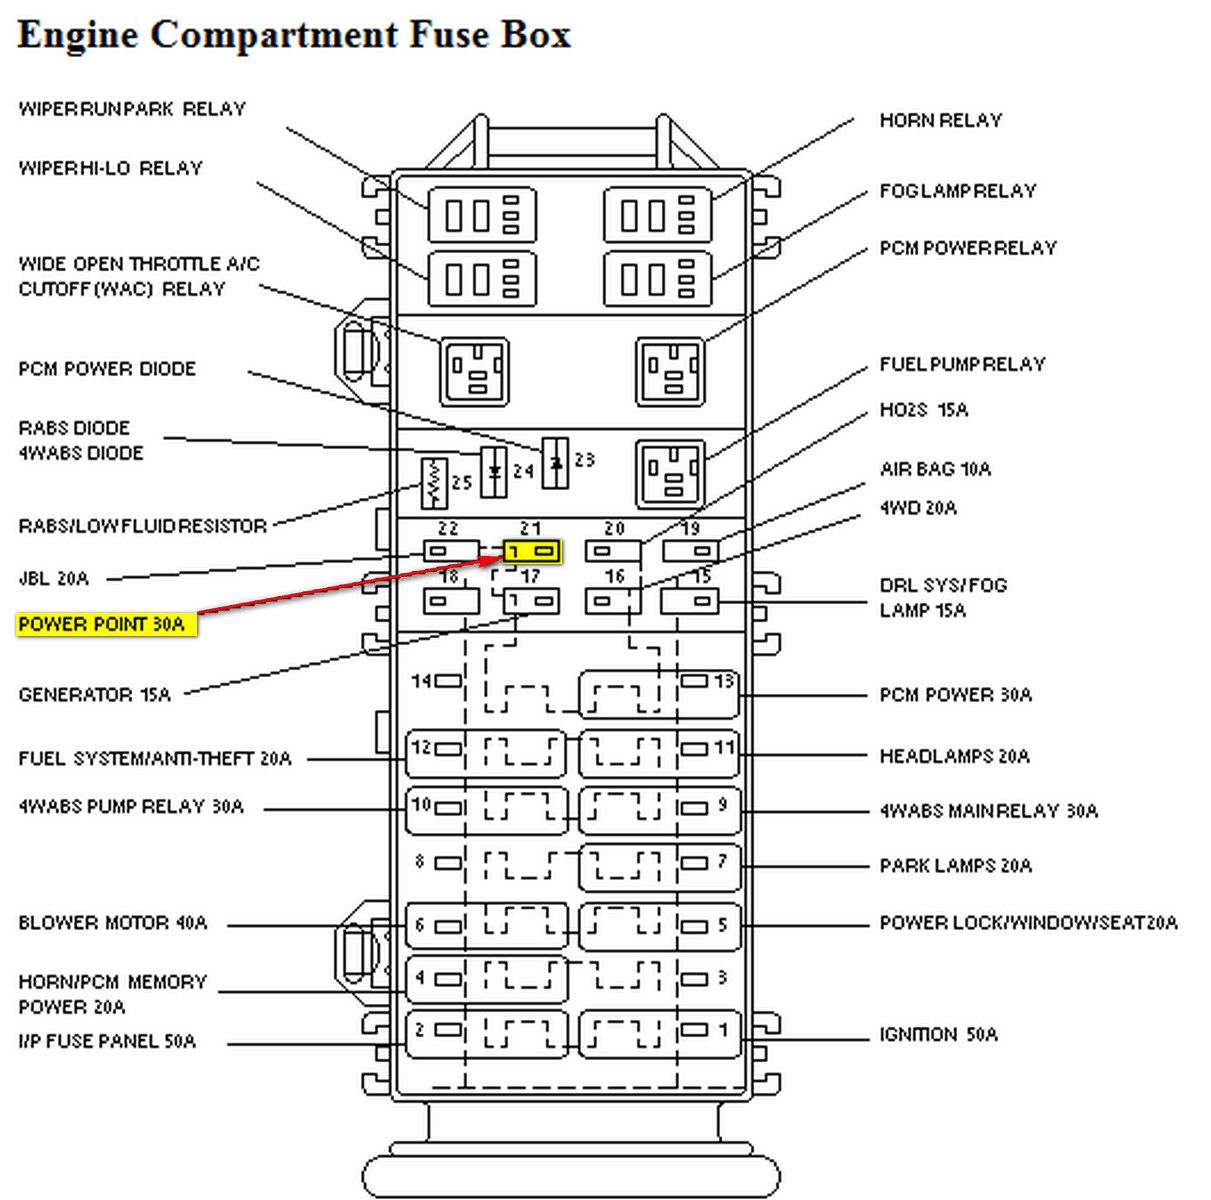 hight resolution of 1997 ford ranger fuse box diagram truck part diagrams ford ranger rh pinterest com 2001 ford ranger fuse diagram 1998 ford ranger fuse box diagram